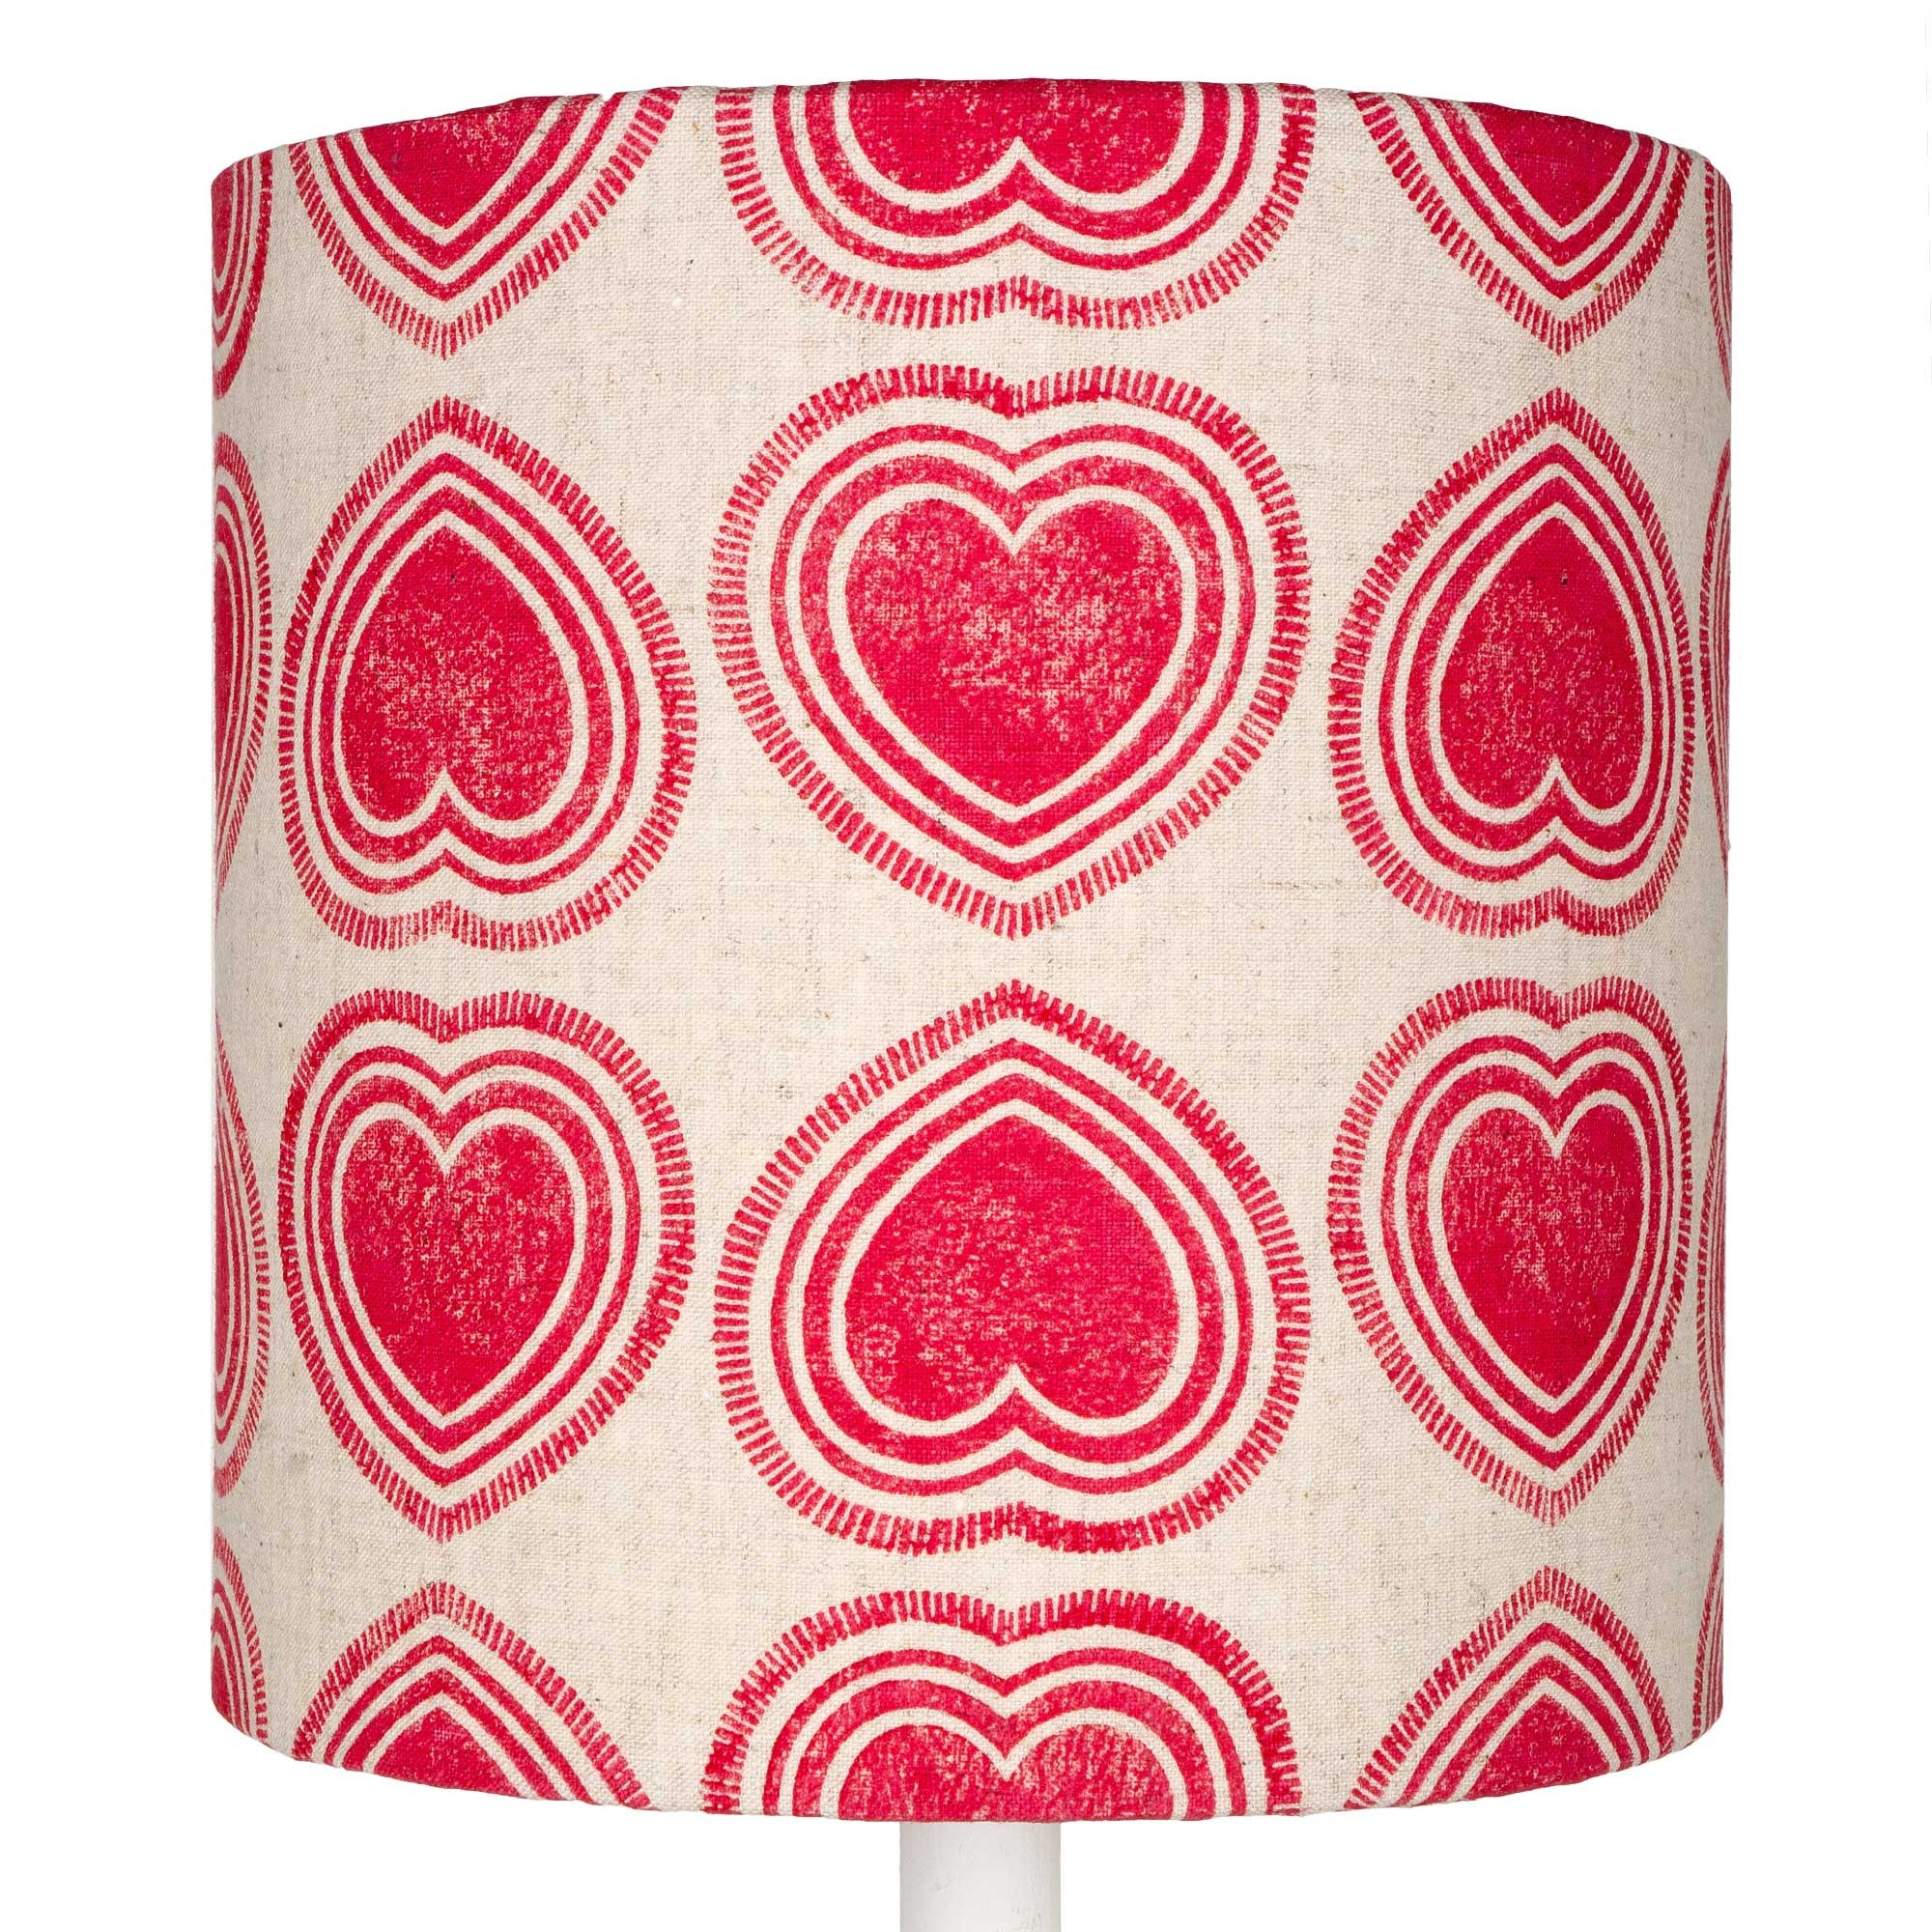 Pink Hearts table lampshade